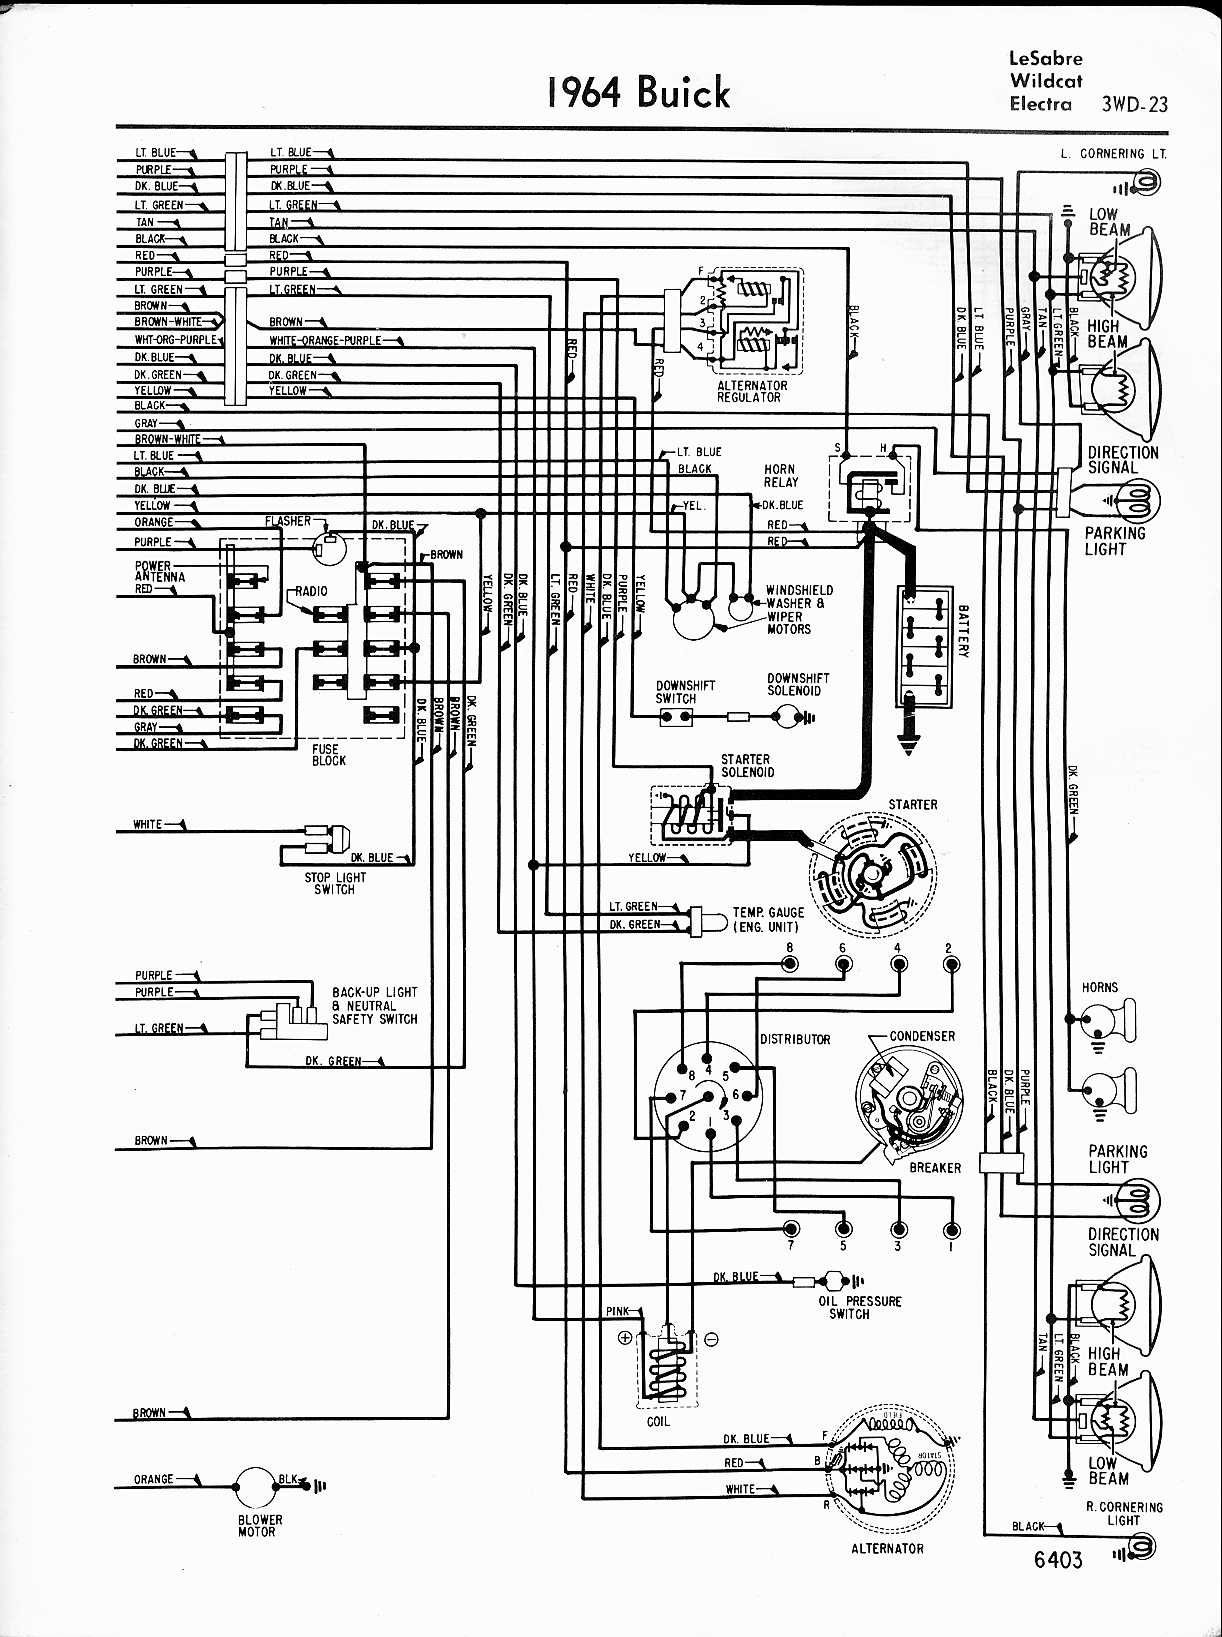 Wiring Diagram For 1994 Buick Park Ave - Wiring Diagrams on wiring diagram for 1998 oldsmobile intrigue, wiring diagram for 2006 pontiac g6, wiring diagram for 2005 buick lesabre, wiring diagram for 1999 oldsmobile alero, wiring diagram for 2001 buick lesabre, wiring diagram for 2002 buick lesabre, wiring diagram for 1996 nissan maxima, wiring diagram for 1995 buick lesabre, wiring diagram for 2004 gmc envoy, wiring diagram for 2000 volkswagen jetta, wiring diagram for 2001 pontiac grand am, wiring diagram for 2001 nissan altima, wiring diagram for 2002 pontiac grand am, wiring diagram for 1993 cadillac deville, wiring diagram for 2000 buick lesabre, wiring diagram for 2000 pontiac grand am, wiring diagram for 2003 honda pilot, wiring diagram for 2008 buick lucerne,